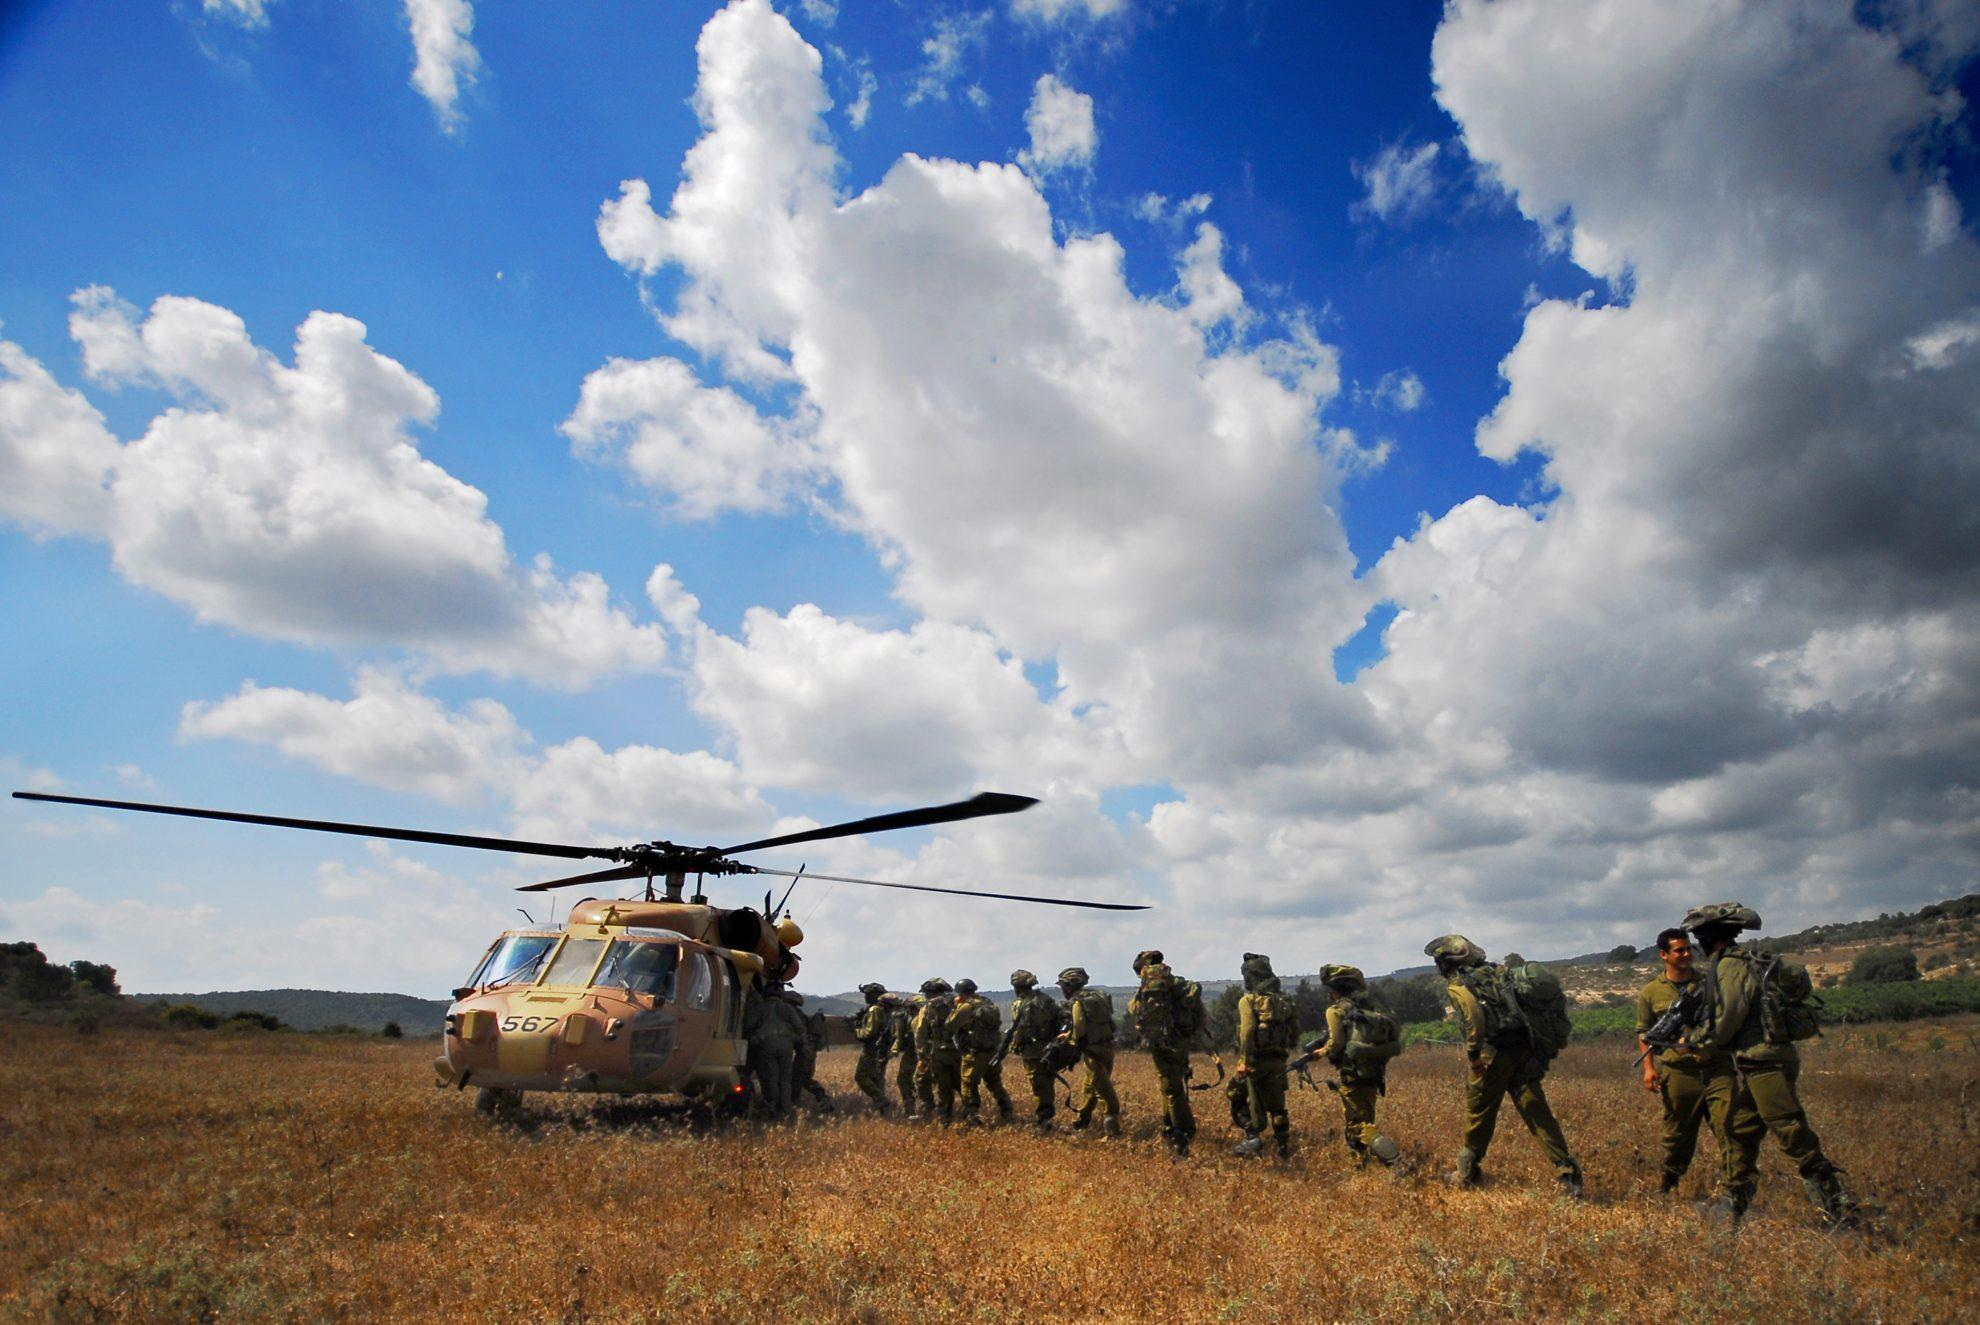 Flickr_-_Israel_Defense_Forces_-_Golani_Soldiers_Filing_Into_-Black_Hawk-_Helicopter,_July_2008